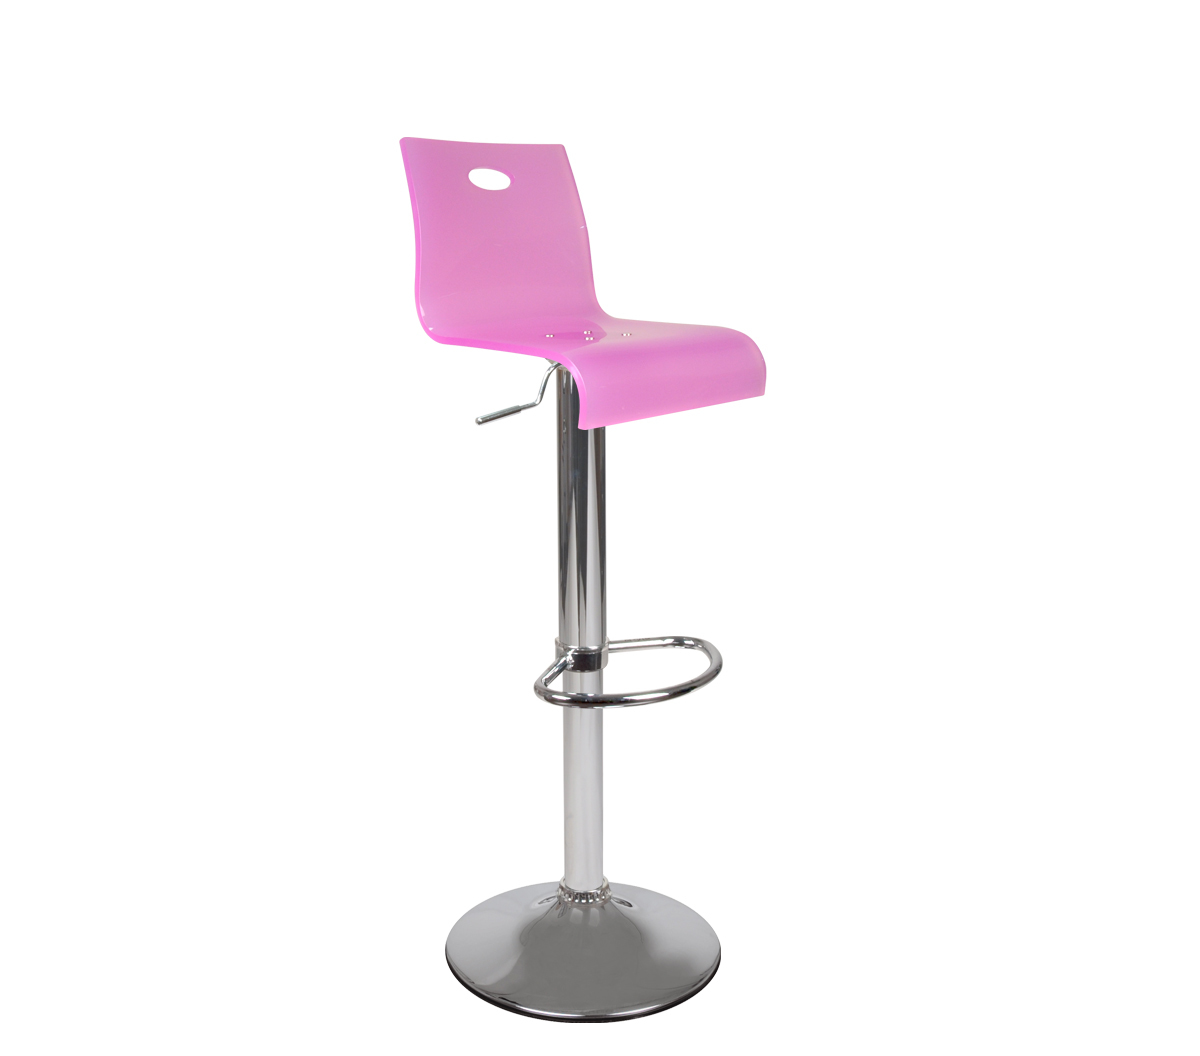 tabouret de bar plexiglas rose saturne miliboo. Black Bedroom Furniture Sets. Home Design Ideas